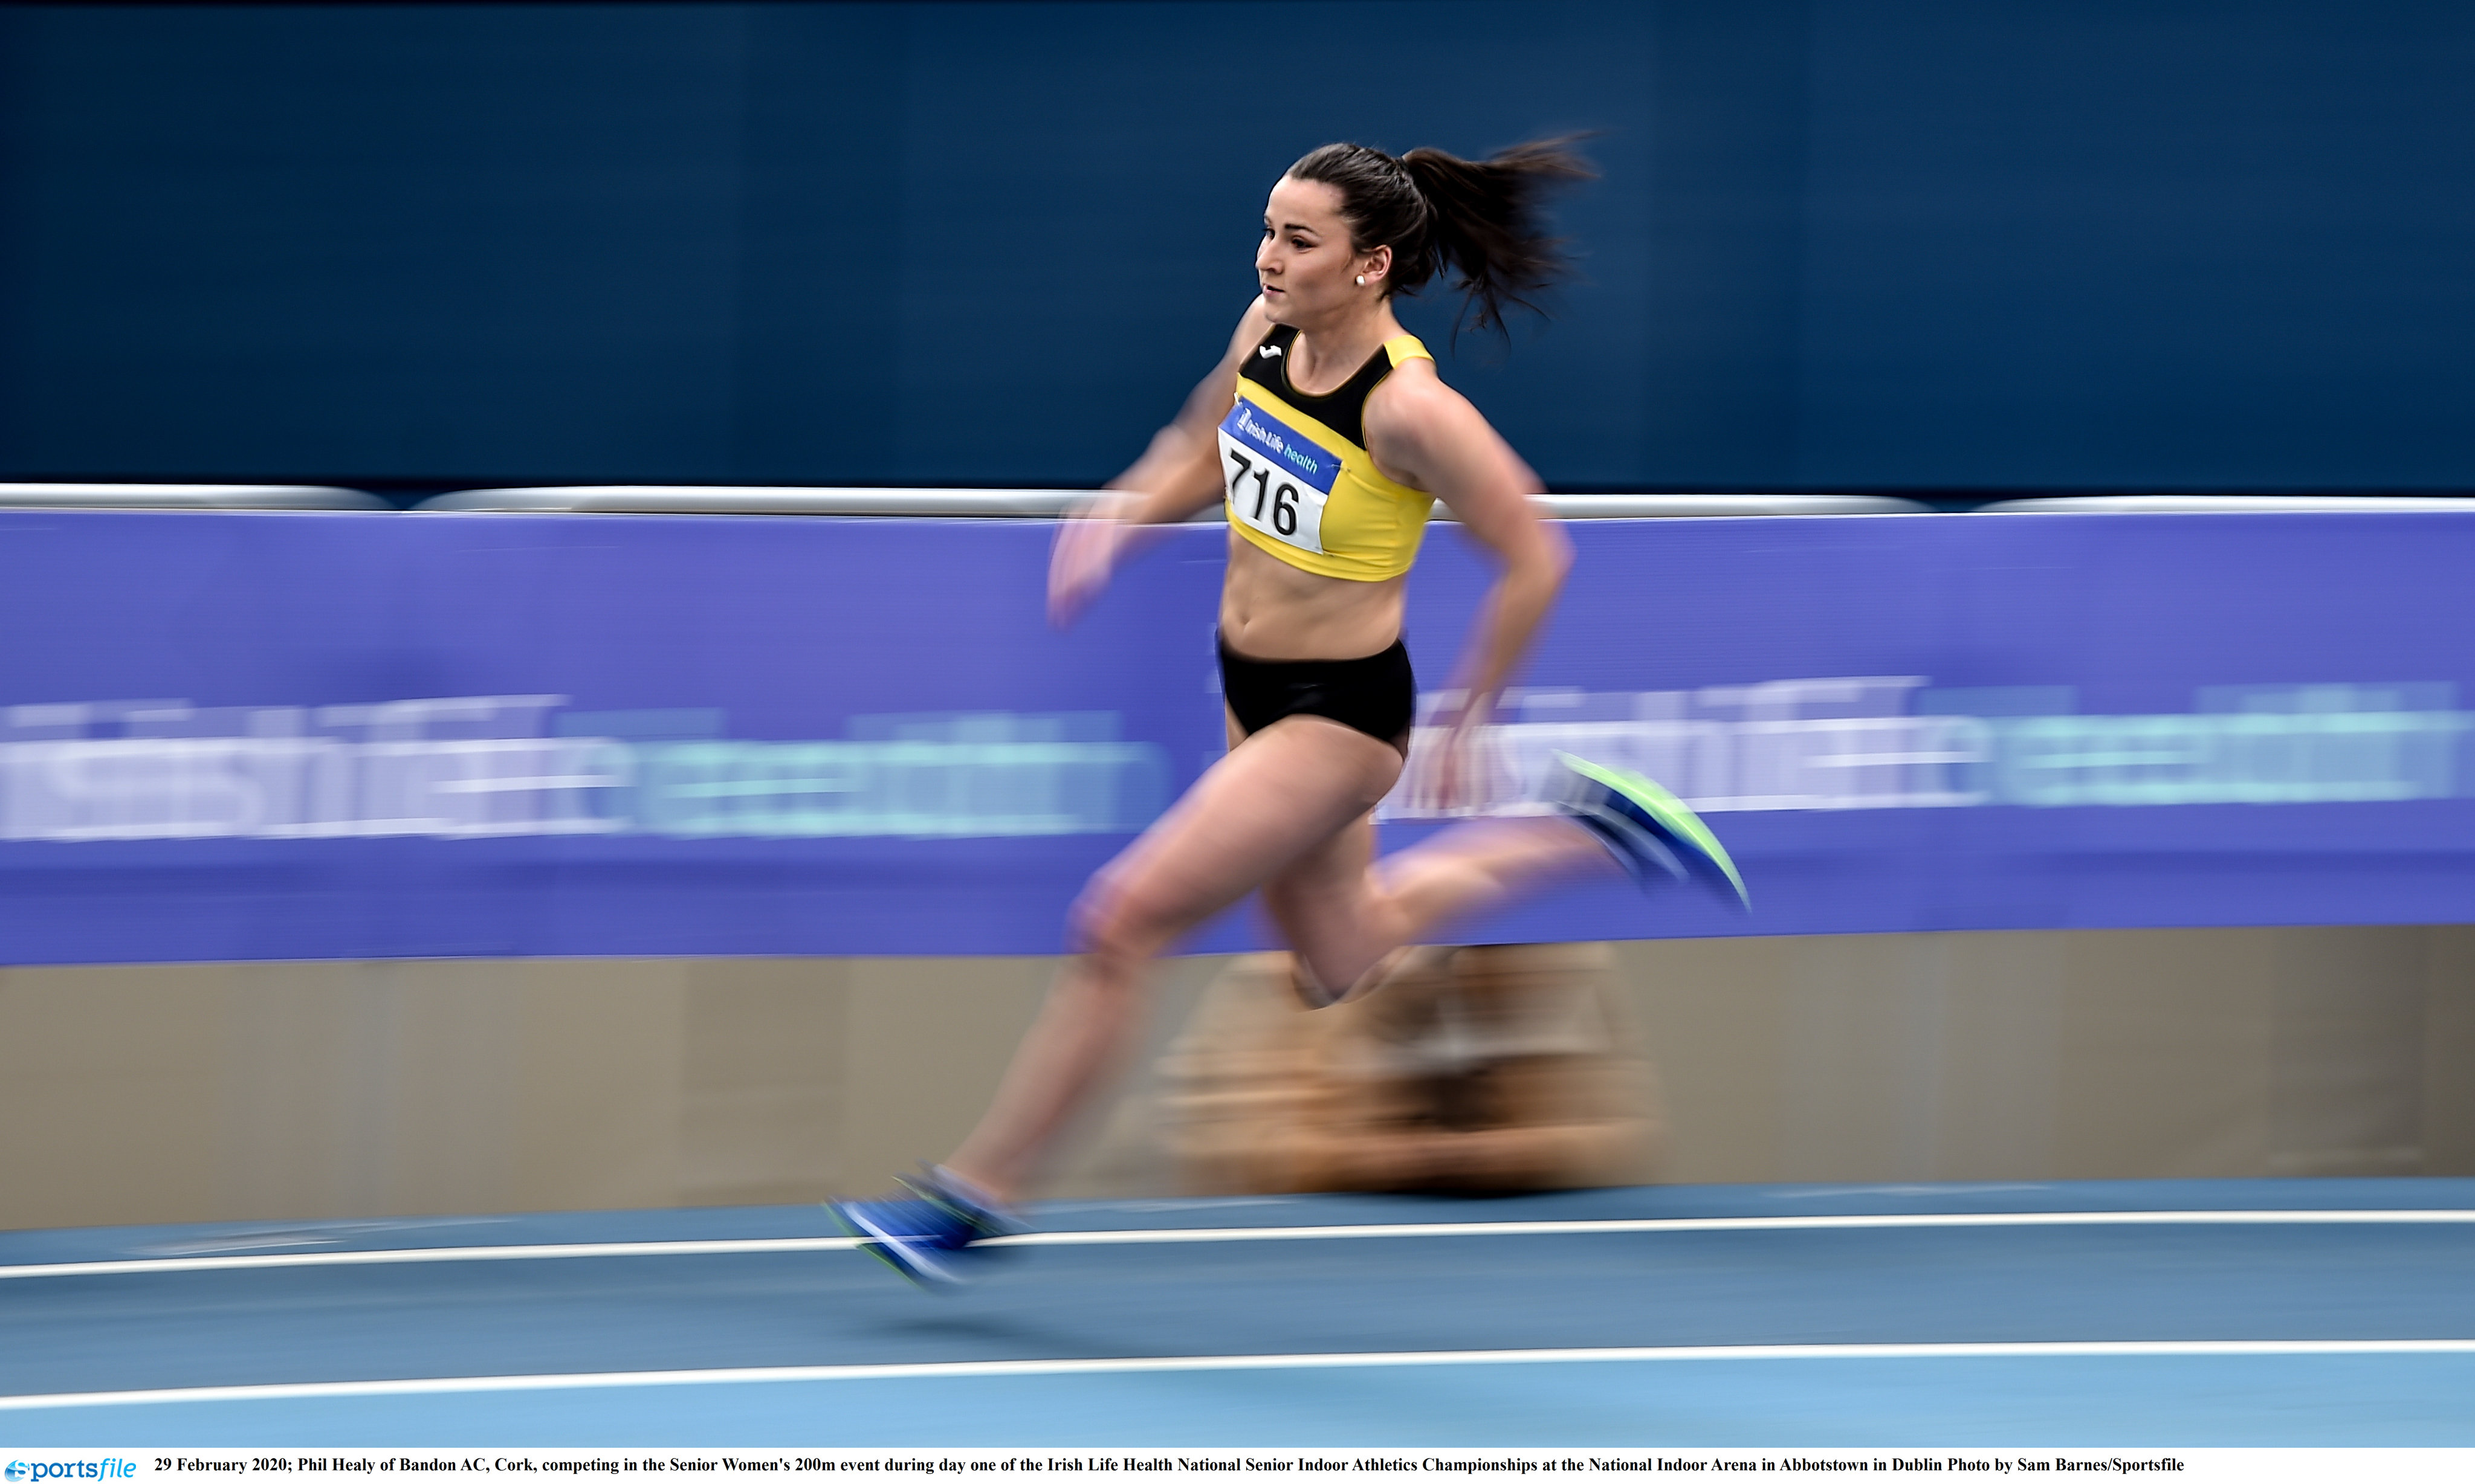 Healy whirs to 200m championship record on day 1